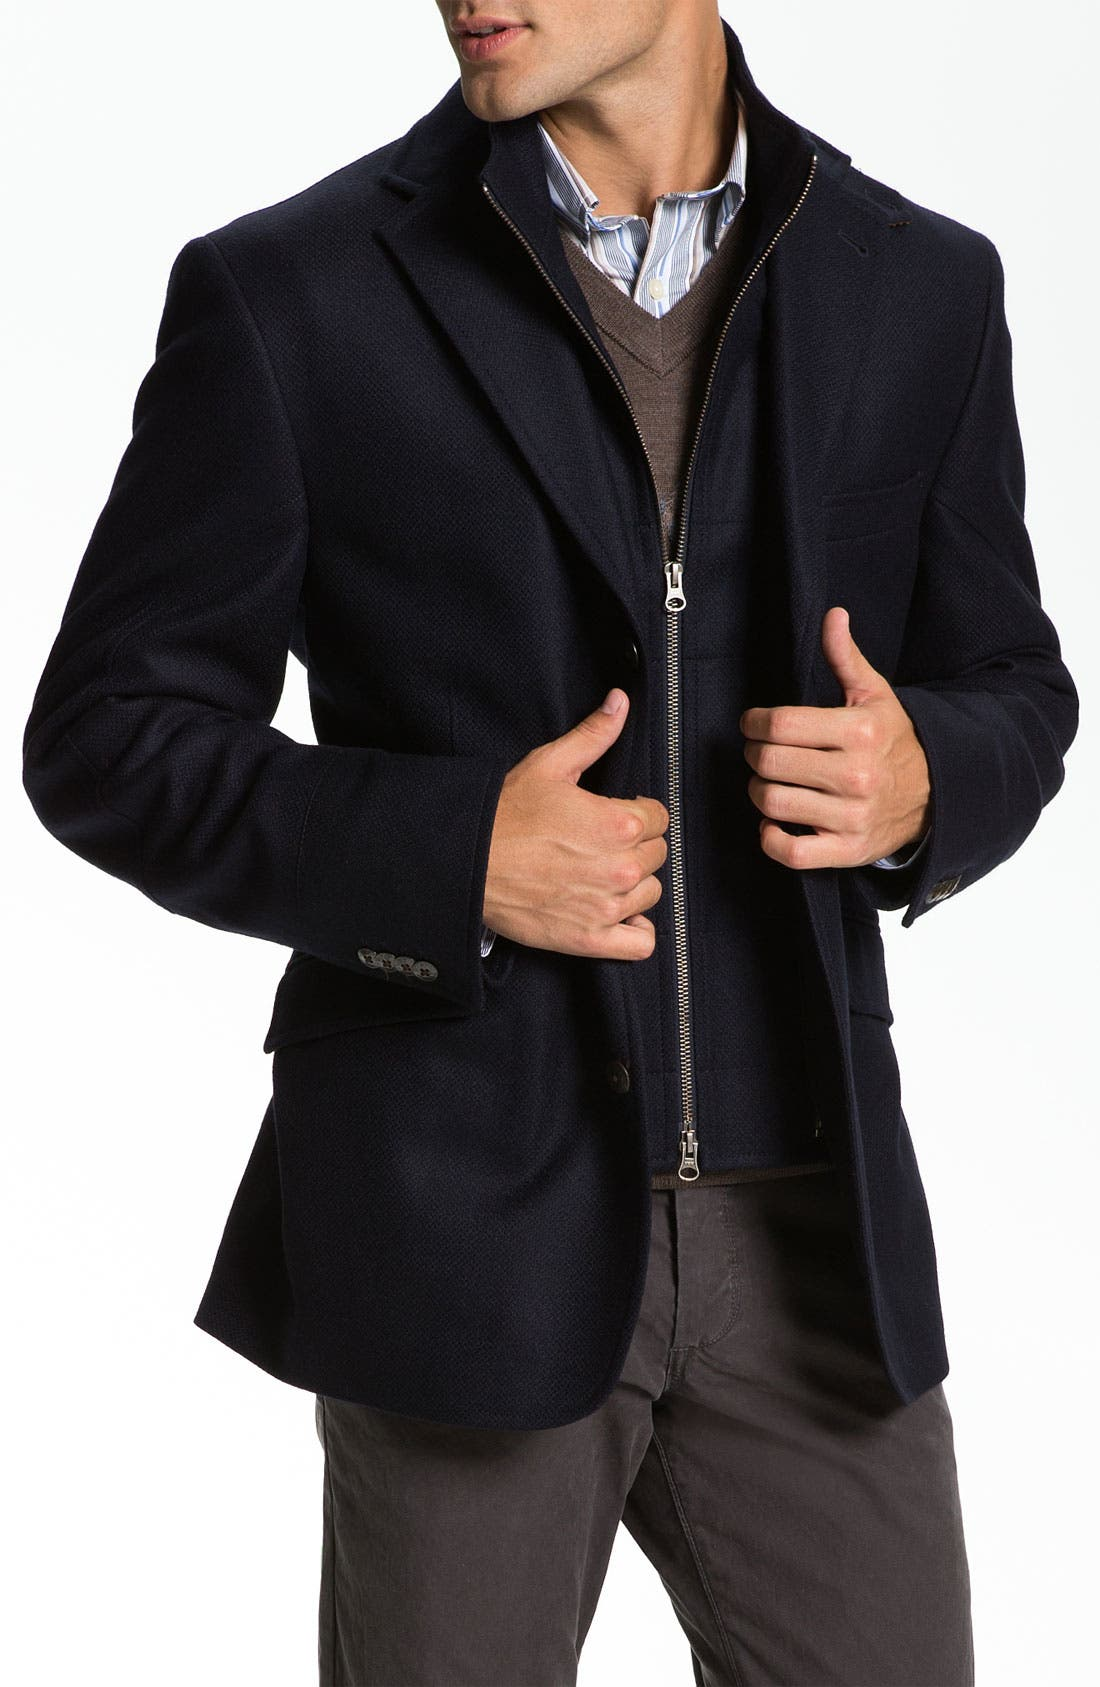 Main Image - Kroon 'Ritchie' Wool & Cashmere Blazer Style Coat